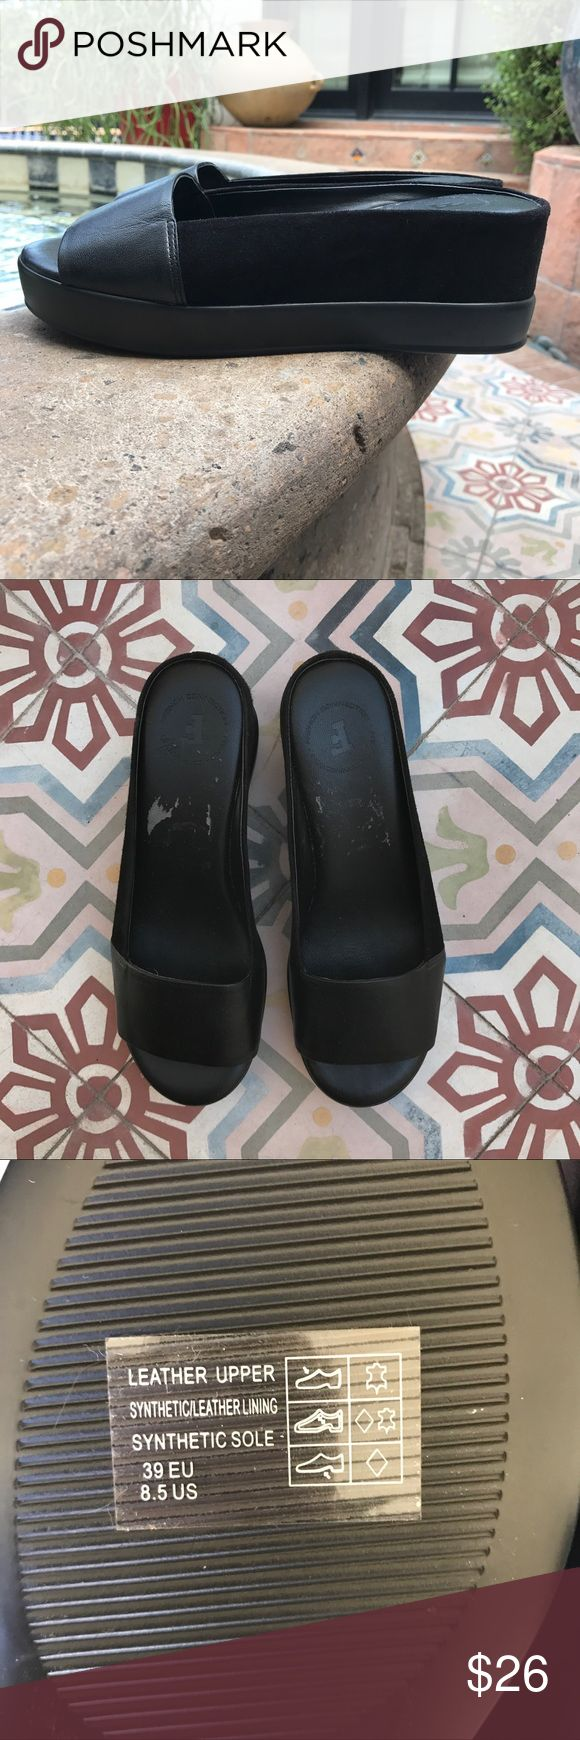 FRENCH CONNECTION SLIDES Sandals loafers size 8.5 Brand new!! Never worn.  Note the footbed has some discoloration.  When removing tag it took part of the coloring.  BUNDLE AND SAVE.  🤗🤗🤗thanks for looking. 🤗🤗🤗🤗 French Connection Shoes Flats & Loafers